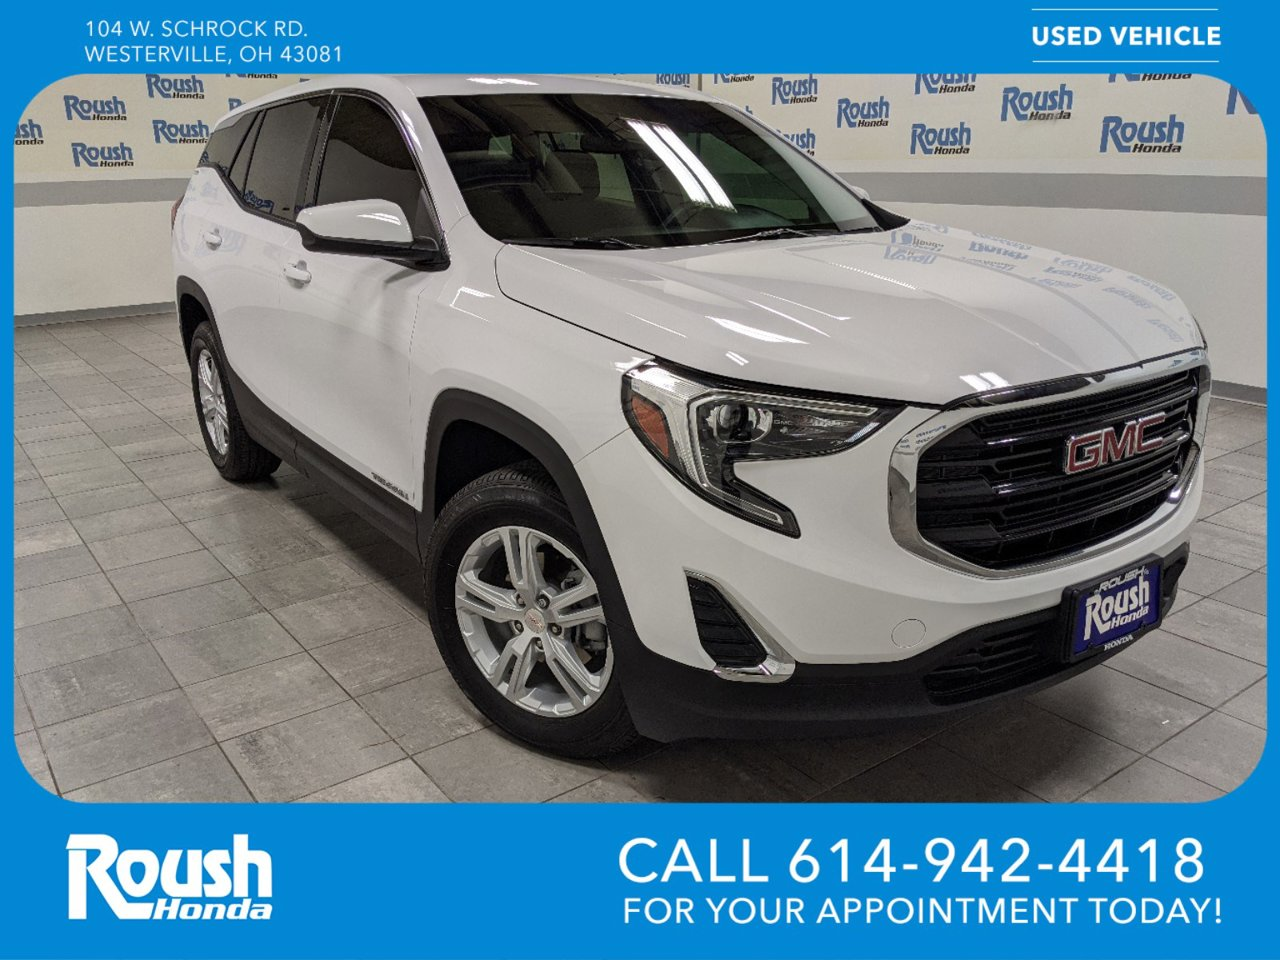 Used 2020 GMC Terrain in Westerville, OH